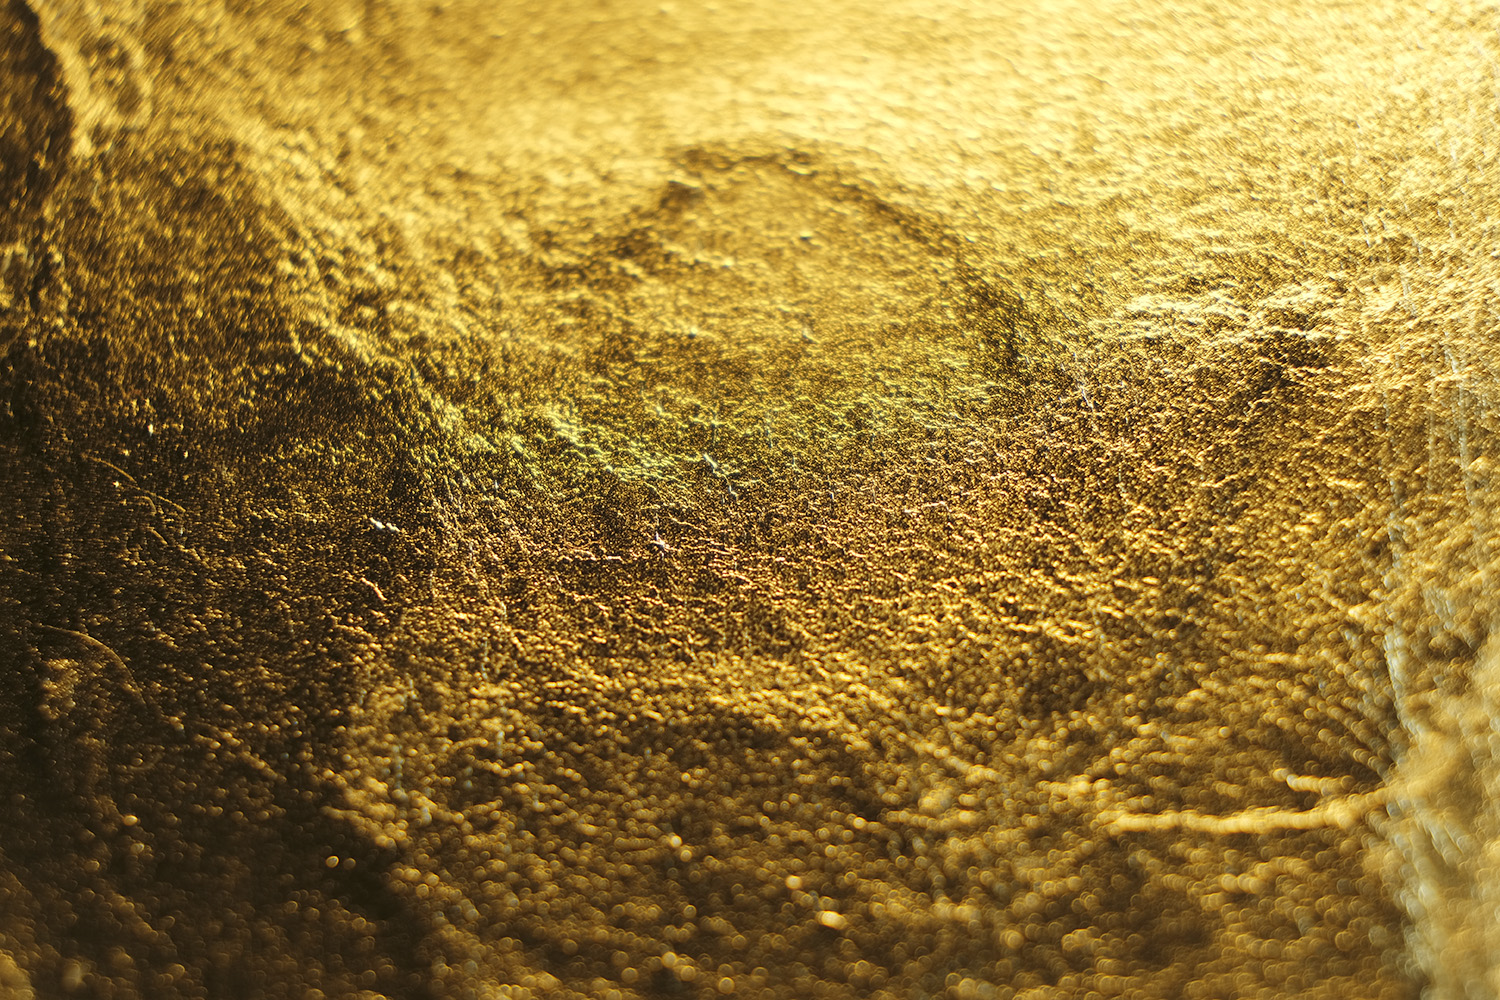 Close up gold leaf sample